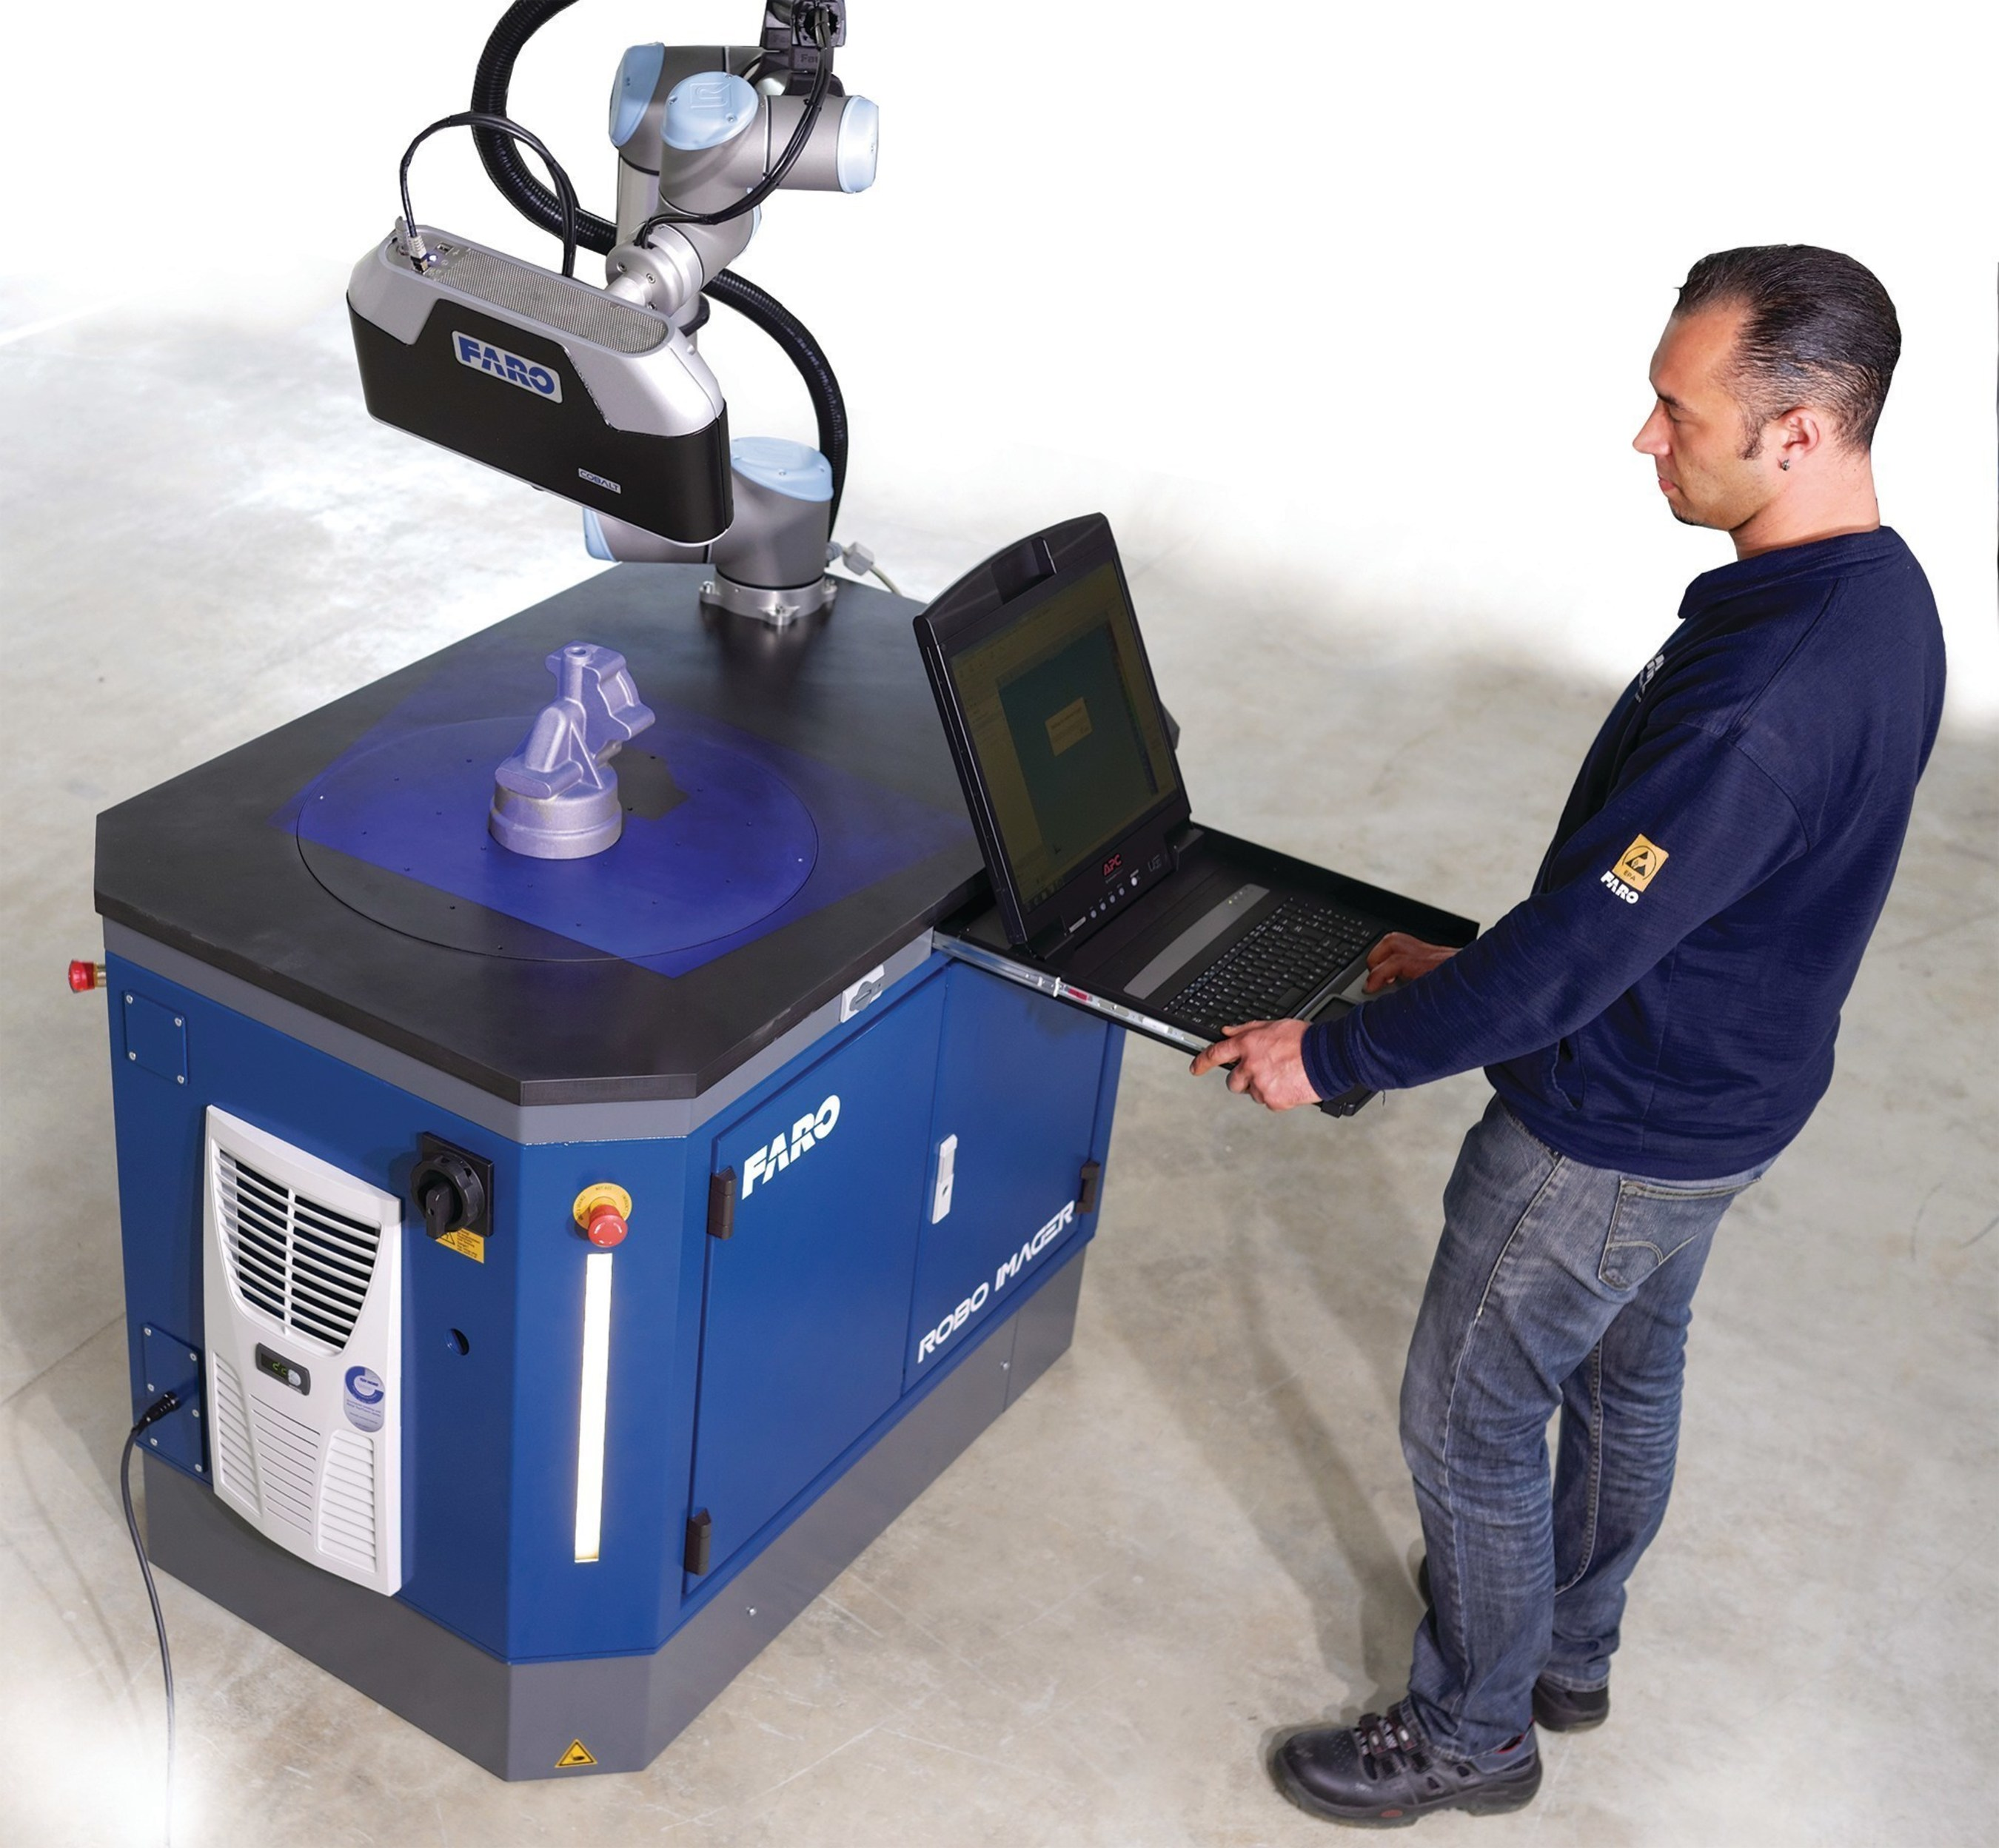 The FARO Factory Robo-Imager Mobile is a turnkey solution to automate the inspection and verification of parts at any location in the production environment.